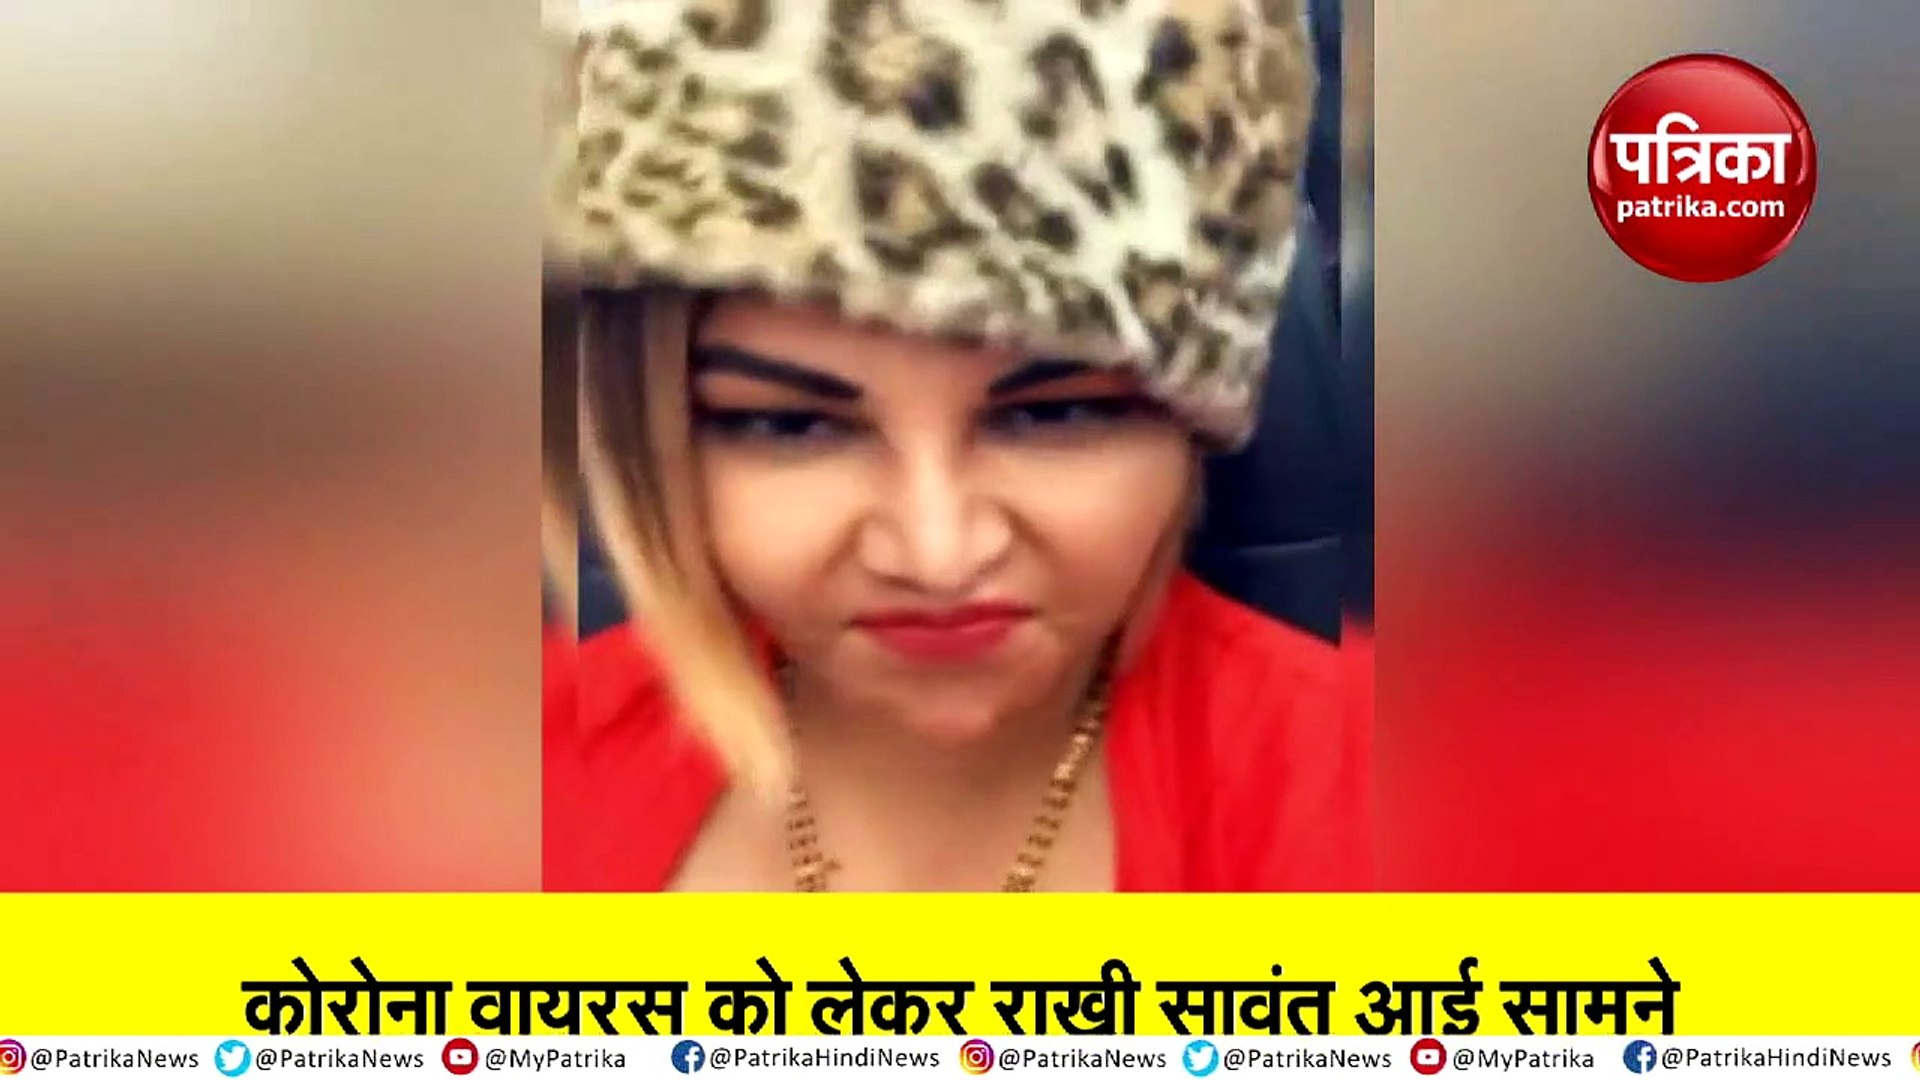 rakhi sawant video on corona virus